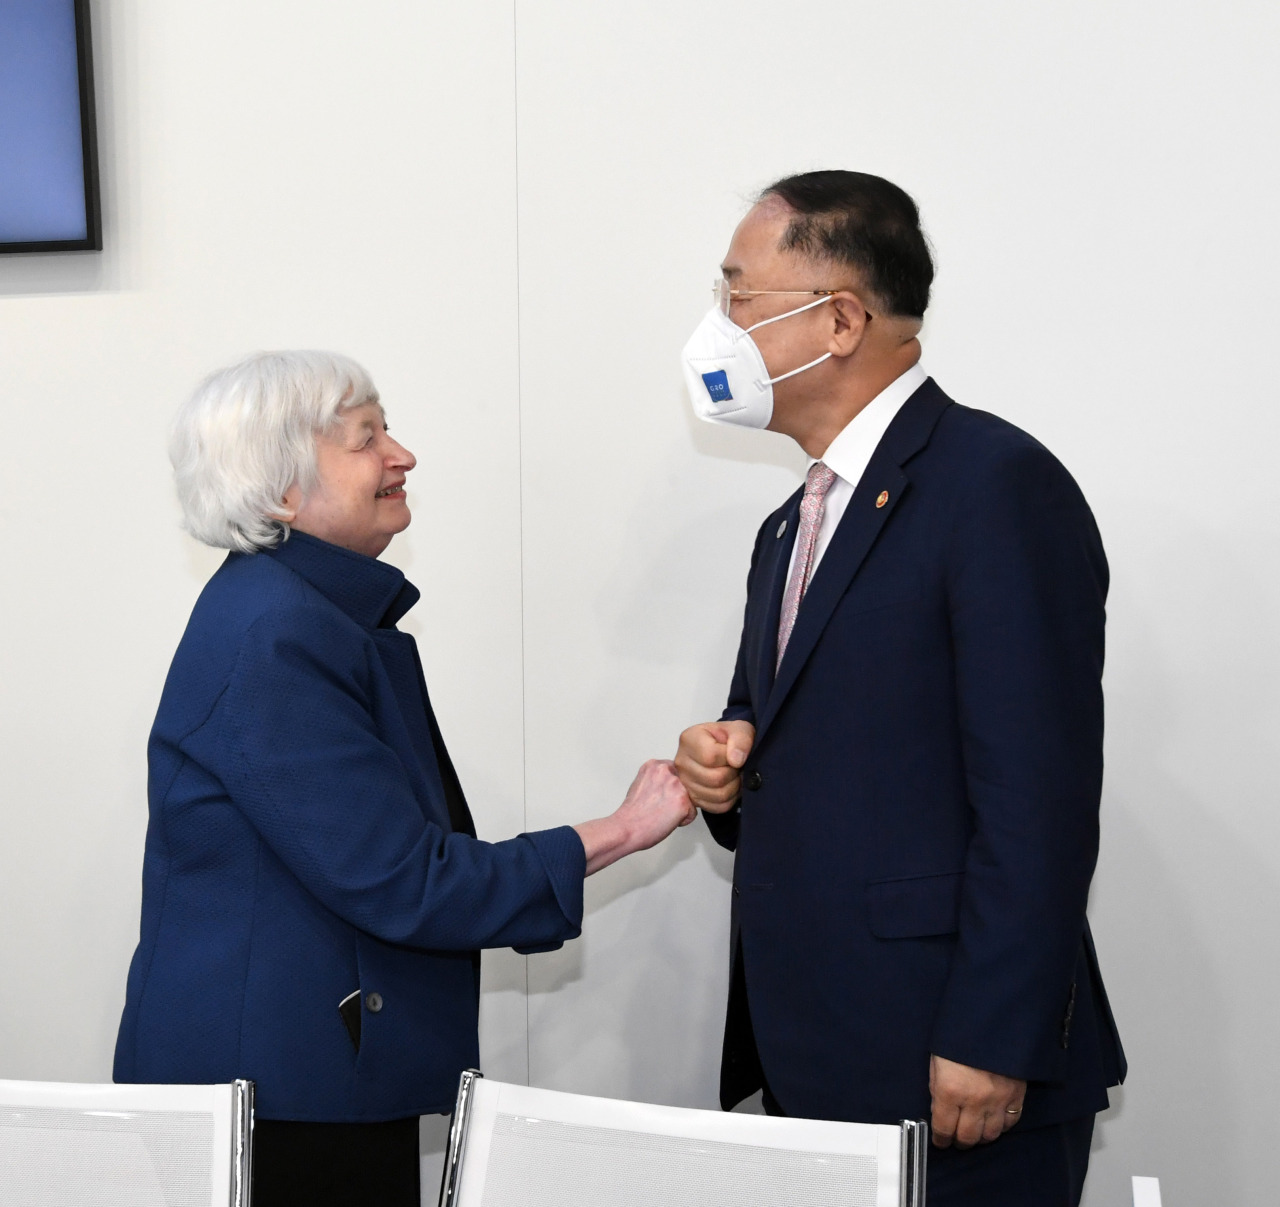 South Korean Finance Minister Hong Nam-ki (right)and Treasury Secretary Janet Yellen greet with a fist bump ahead of their talks in Venice, Italy, on the sidelines of the Group of 20 meeting of top finance and economic officials on Friday. (Yonhap)